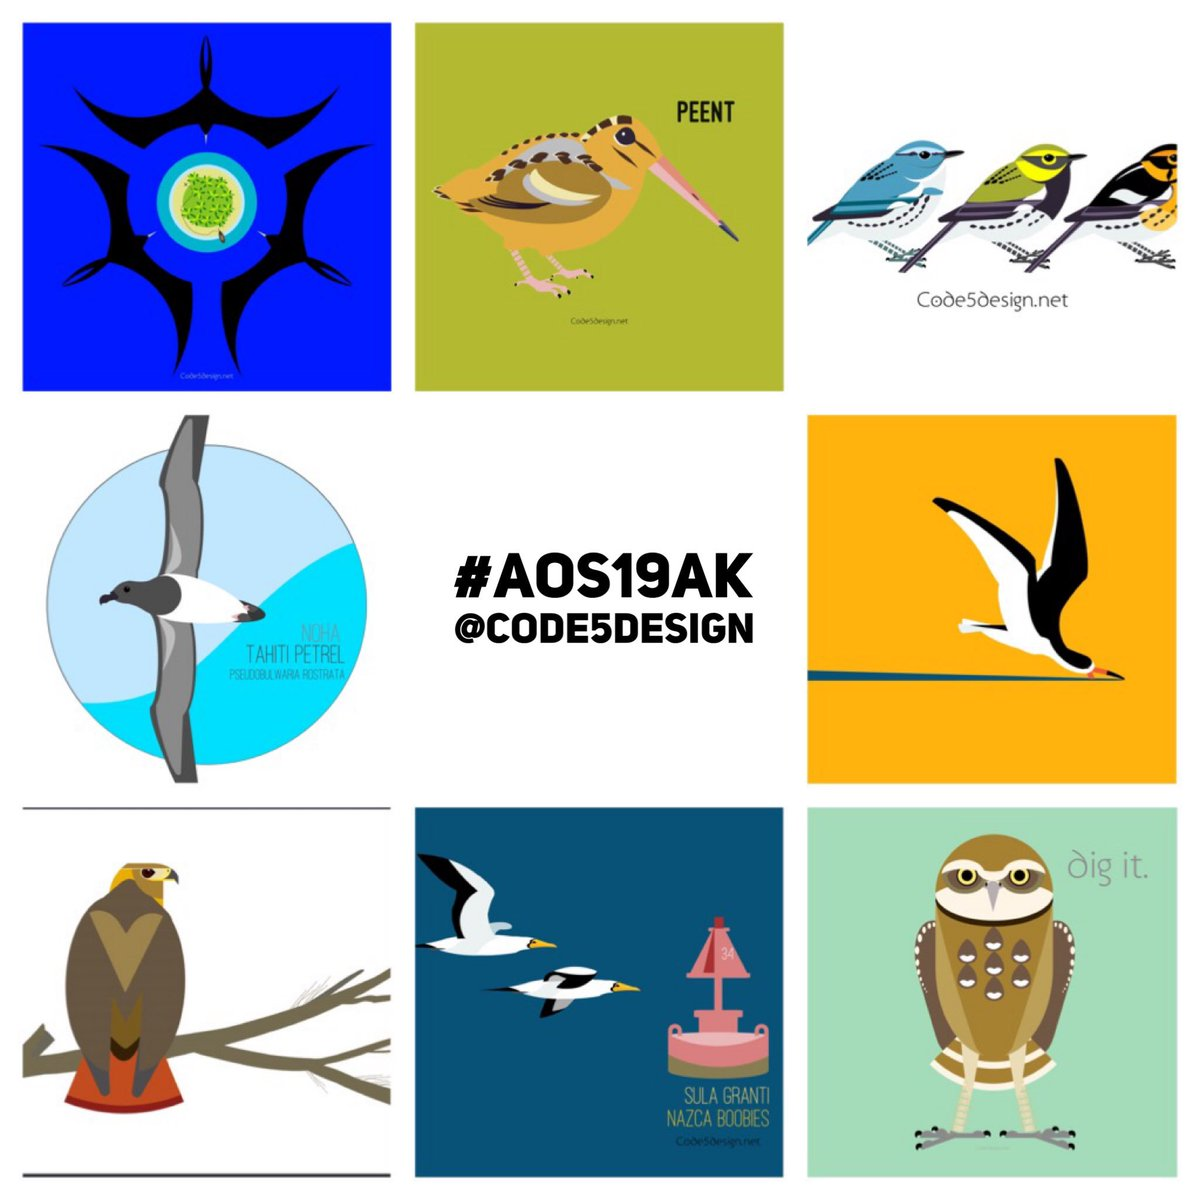 #Discount (15%) for first 10 #AOS19AK participants who tweet about their research using @Code5Design tag and any of our images beside the #AOS19AK hashtag! DrBirdLady @Jessica_Oswald #ornithology #birds #scicomm #illustrations #sciart